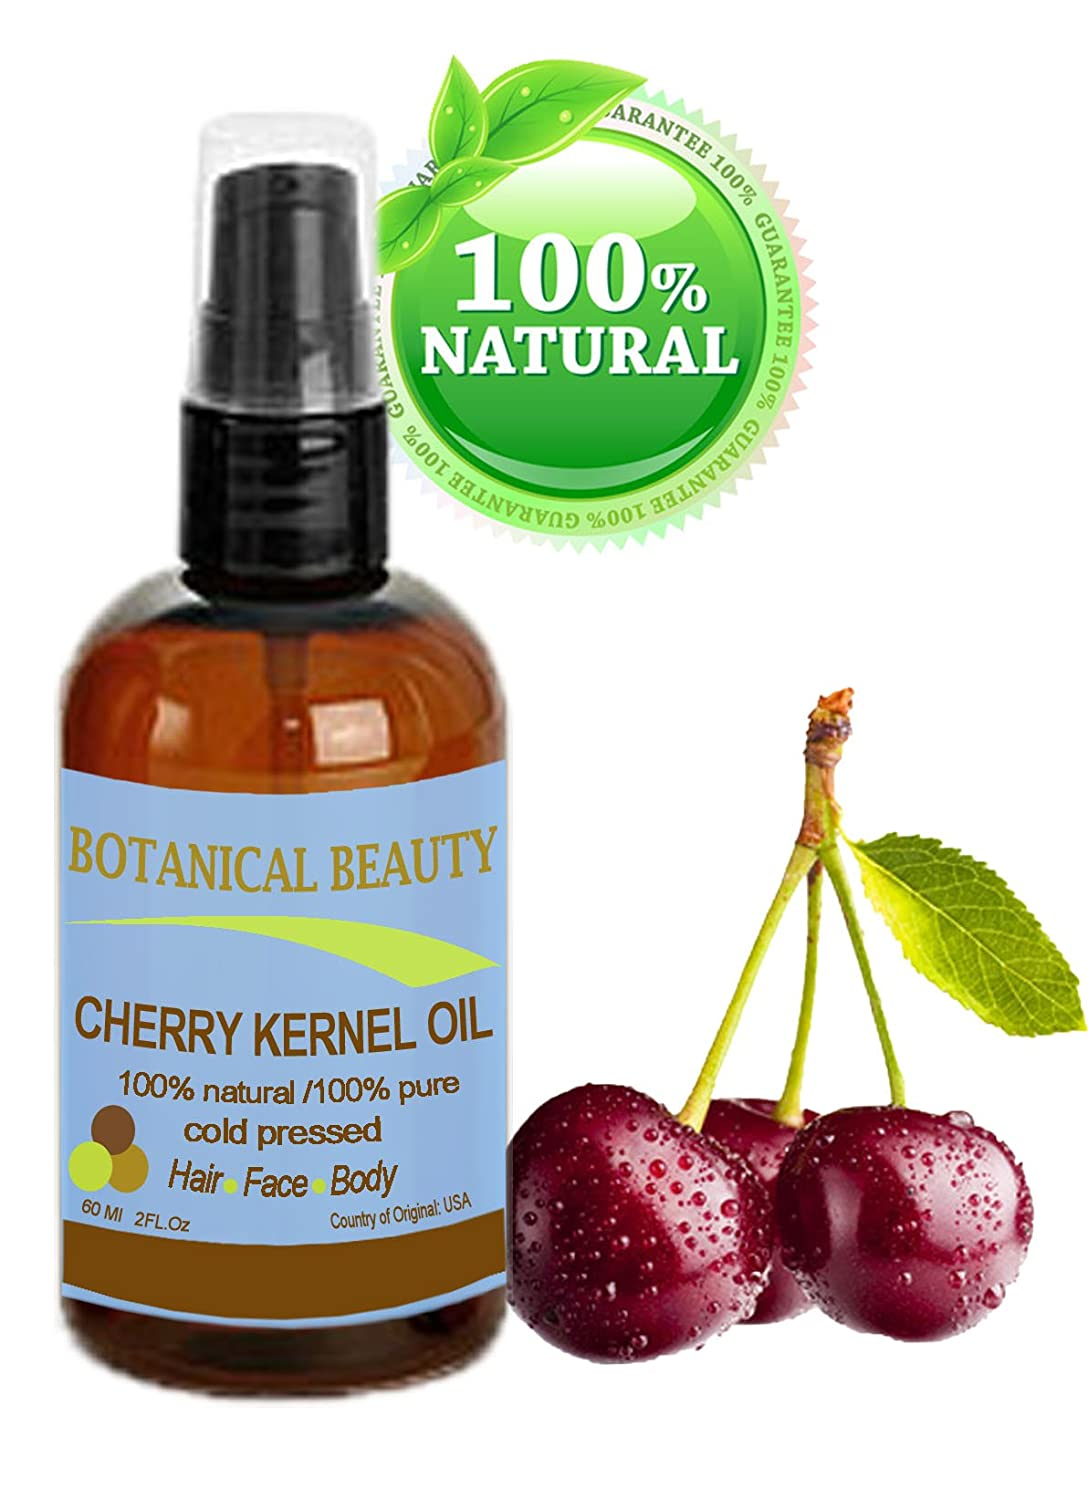 Botanical Beauty CHERRY KERNEL OIL, 100% Pure/100% Natural, For Face, Hair and Body, 2 oz- 60 ml